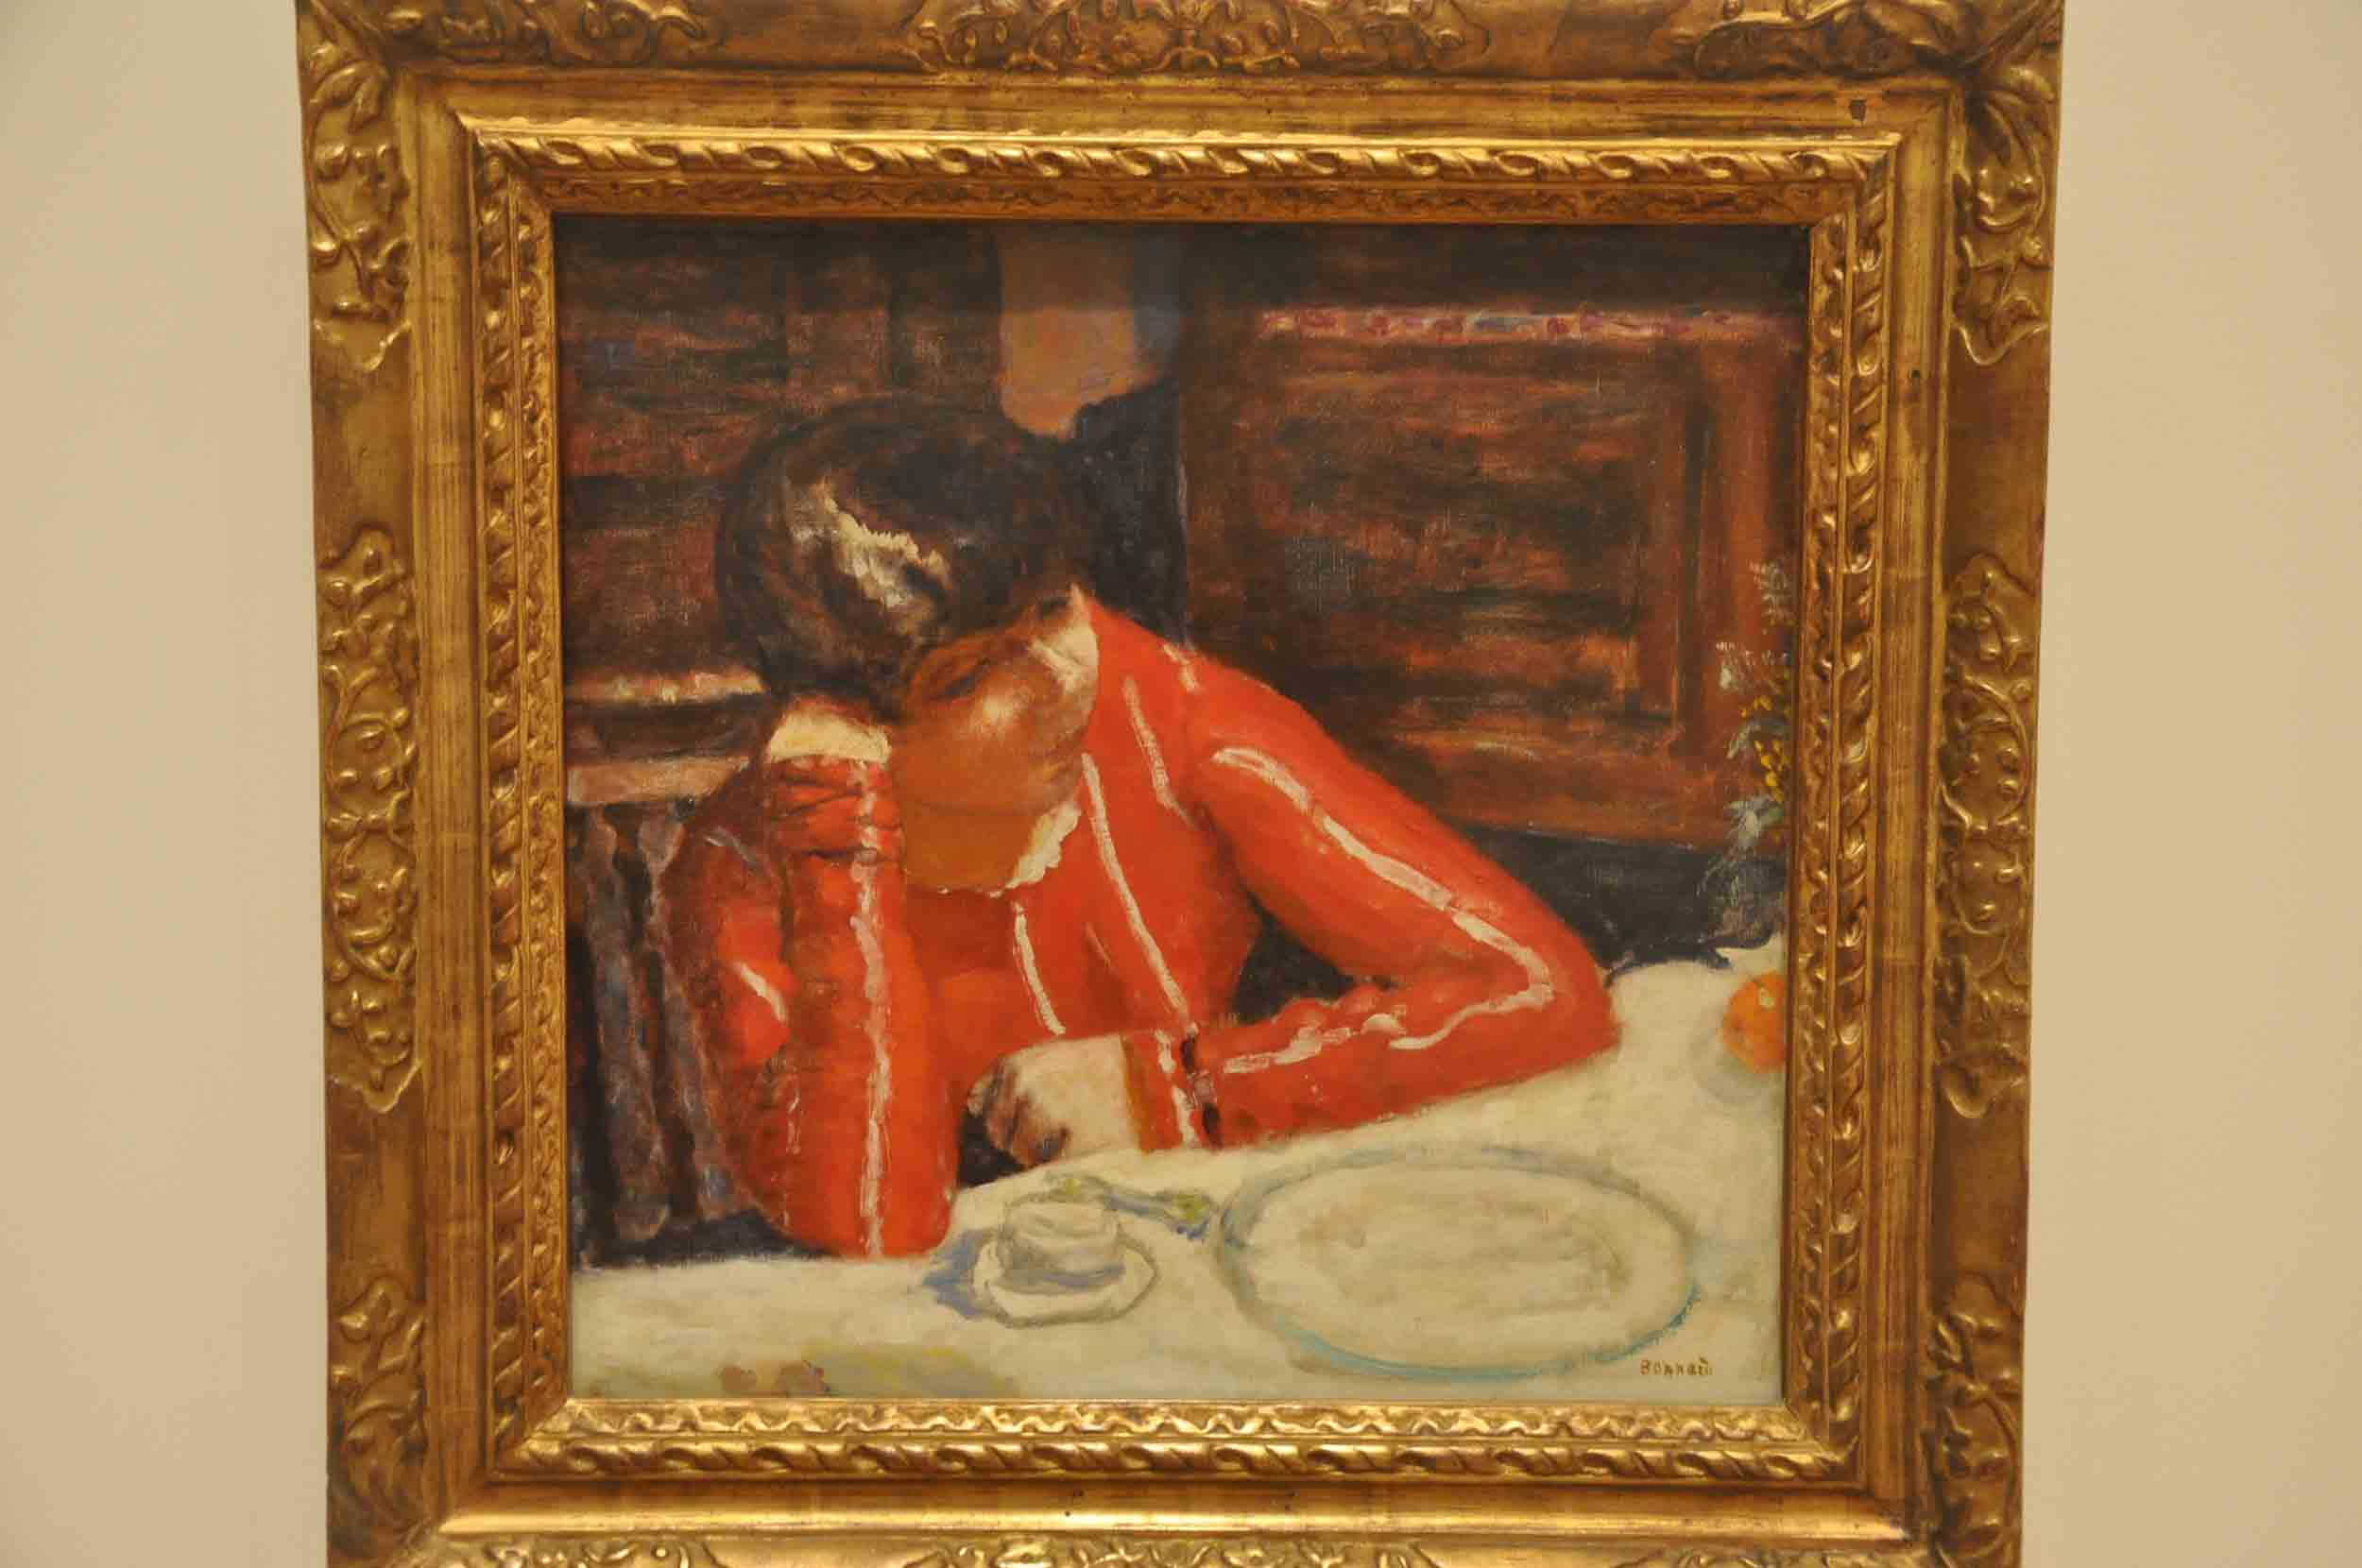 Pierre Bonnard - Red Blouse, 1925